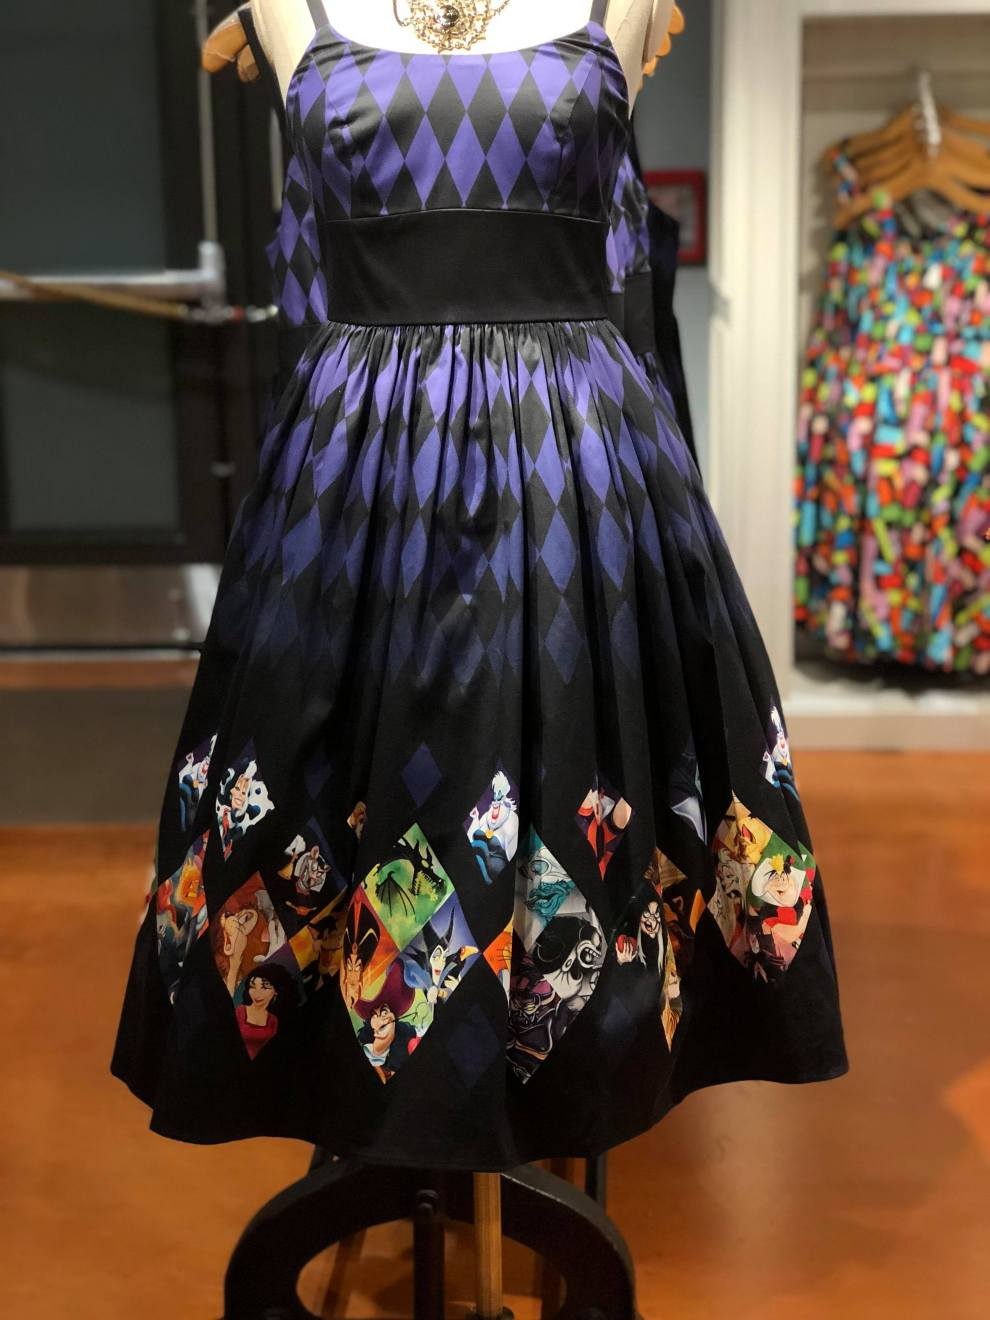 Disney Villains Dress From The Dress Shop In Disney Springs